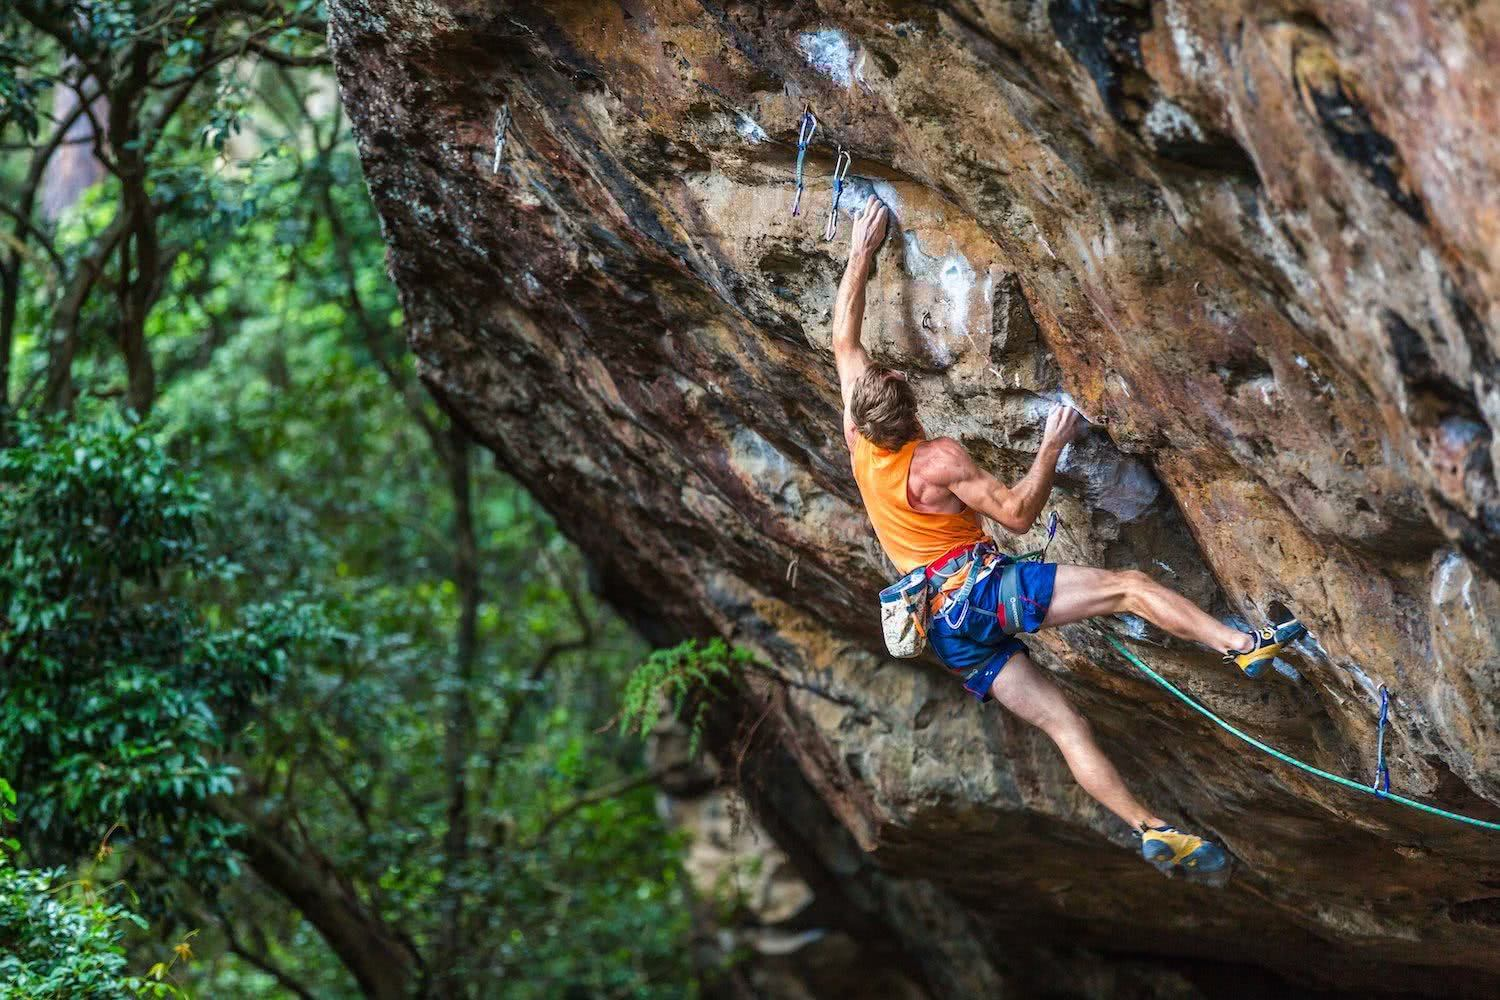 michael evans, mevans photography, anton climbing attack mode, grad 32, beginner rock climbing gear, nowra, nsw